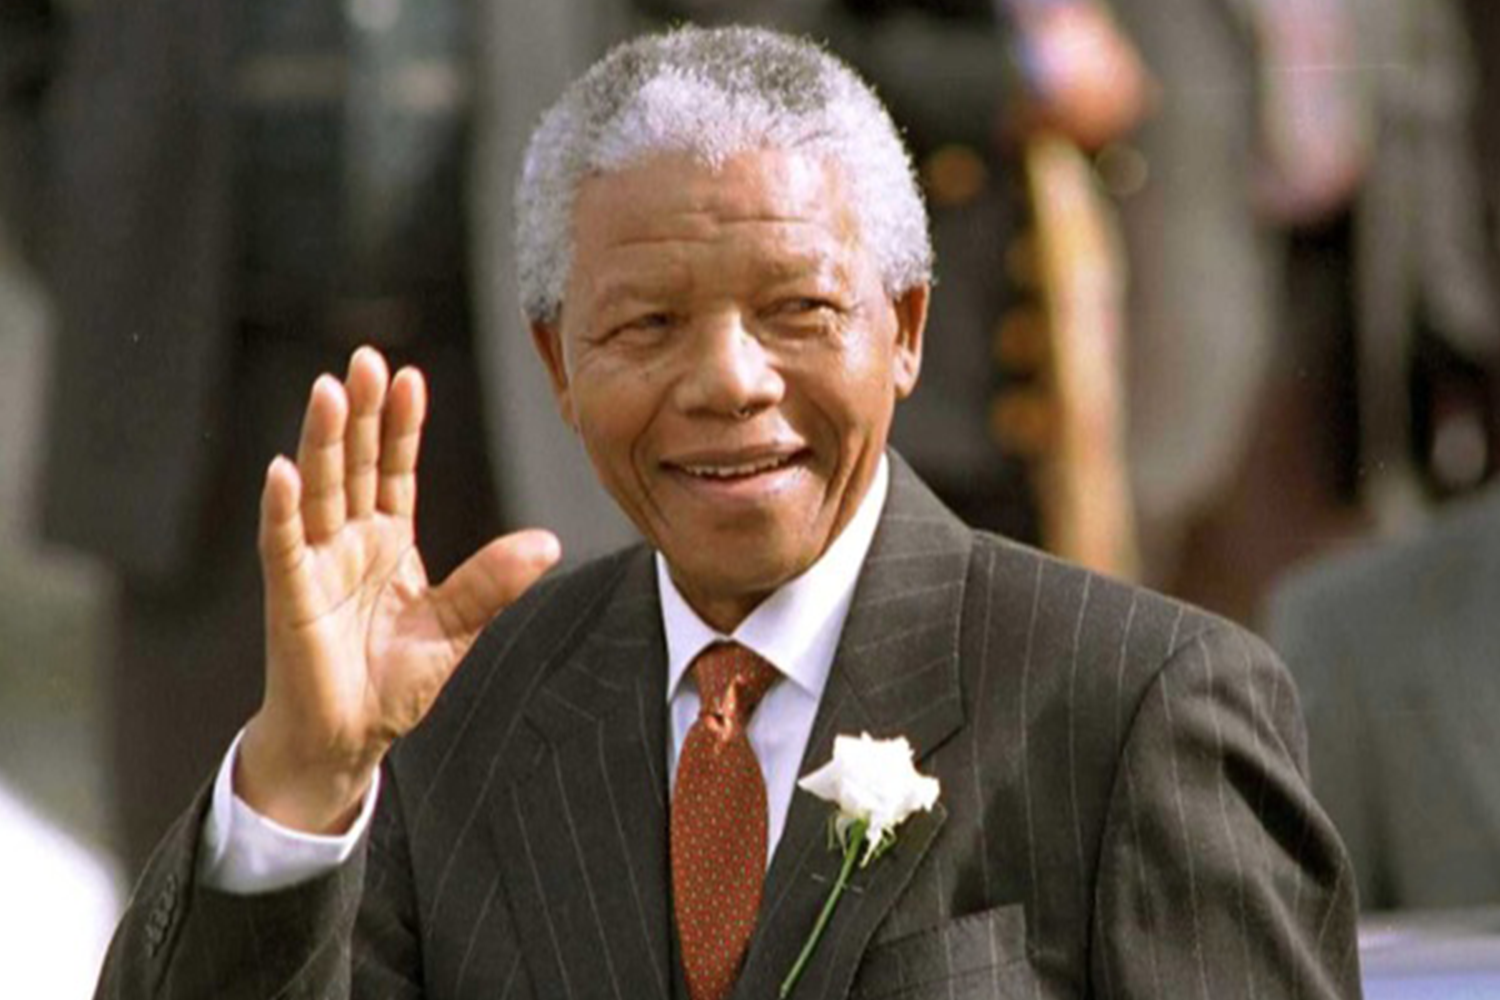 Nelson Mandela Was The First South African President Of A